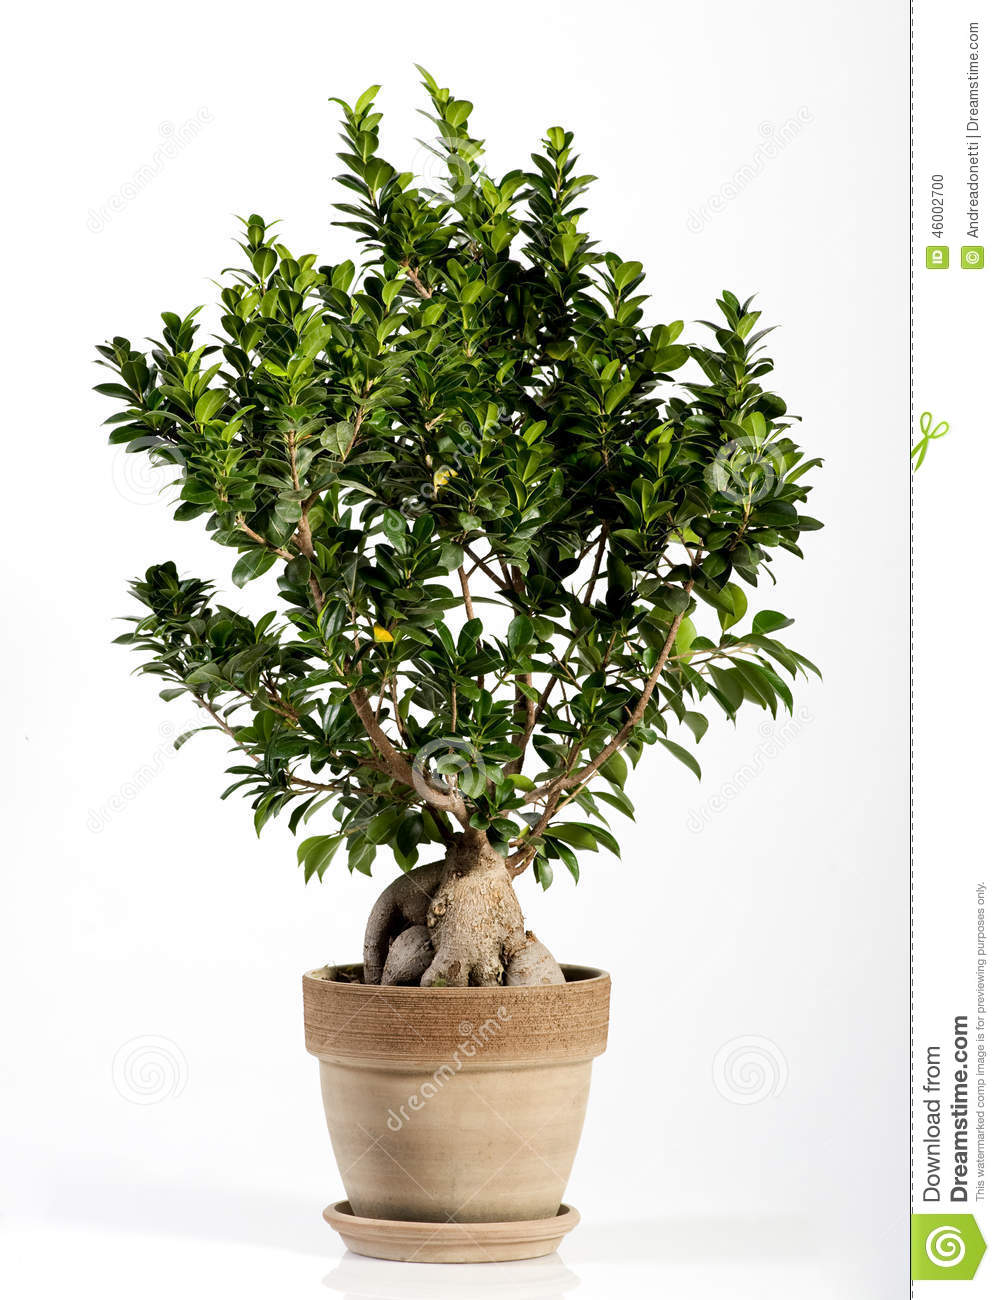 ginseng ficus bonsai baum auf brown topf stockfoto bild. Black Bedroom Furniture Sets. Home Design Ideas